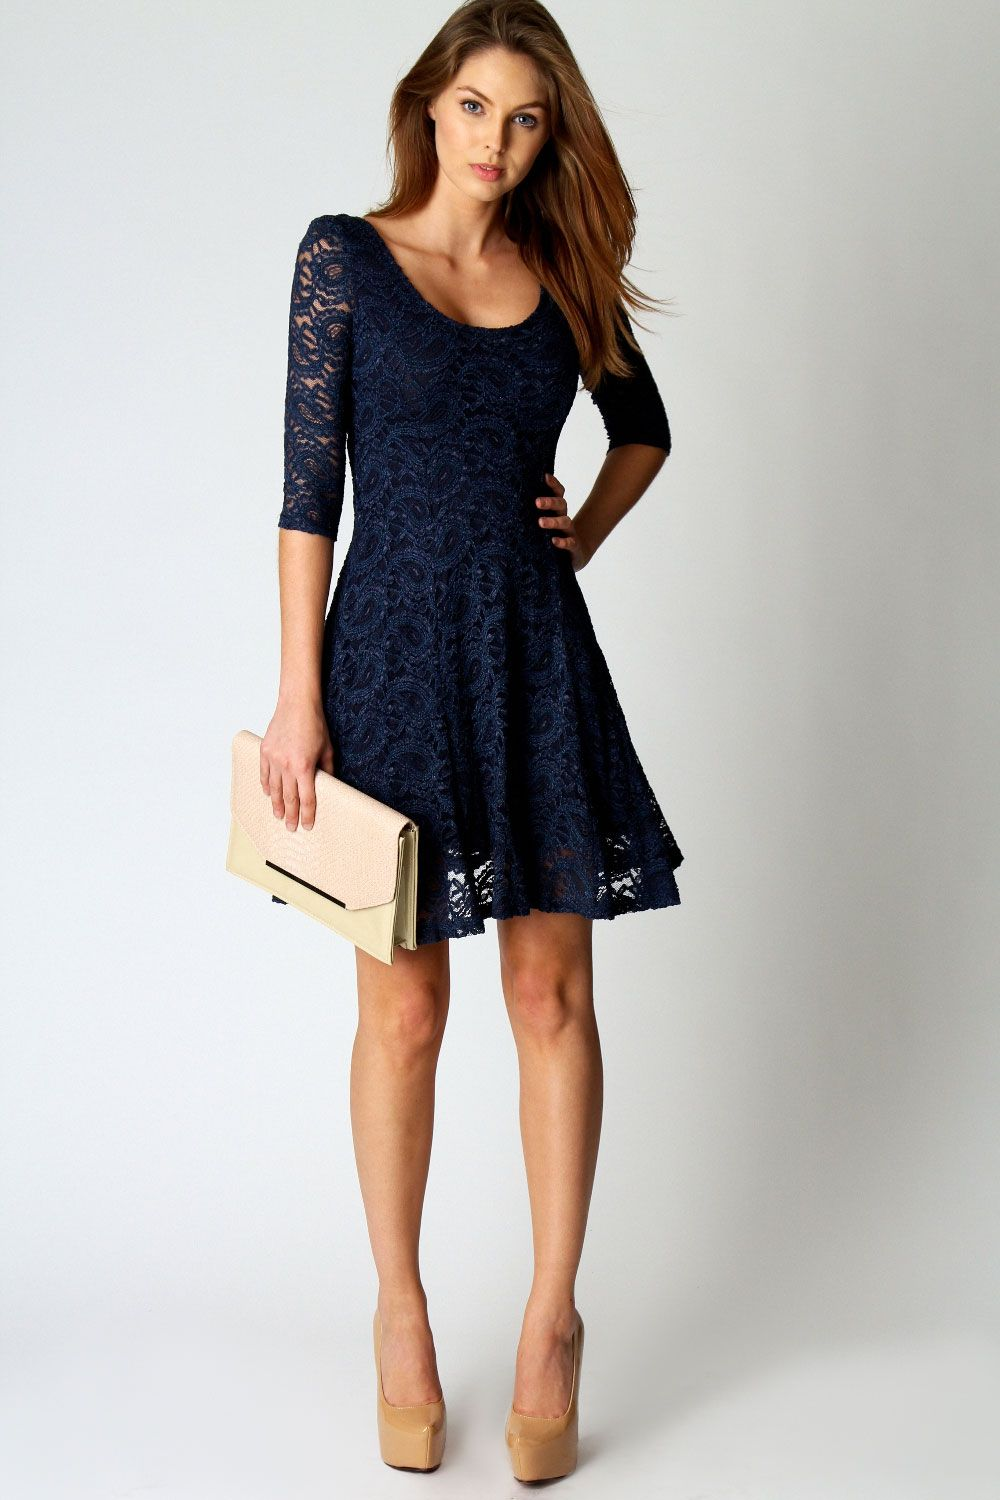 Navy lace dress what iud wear pinterest navy lace lace dress